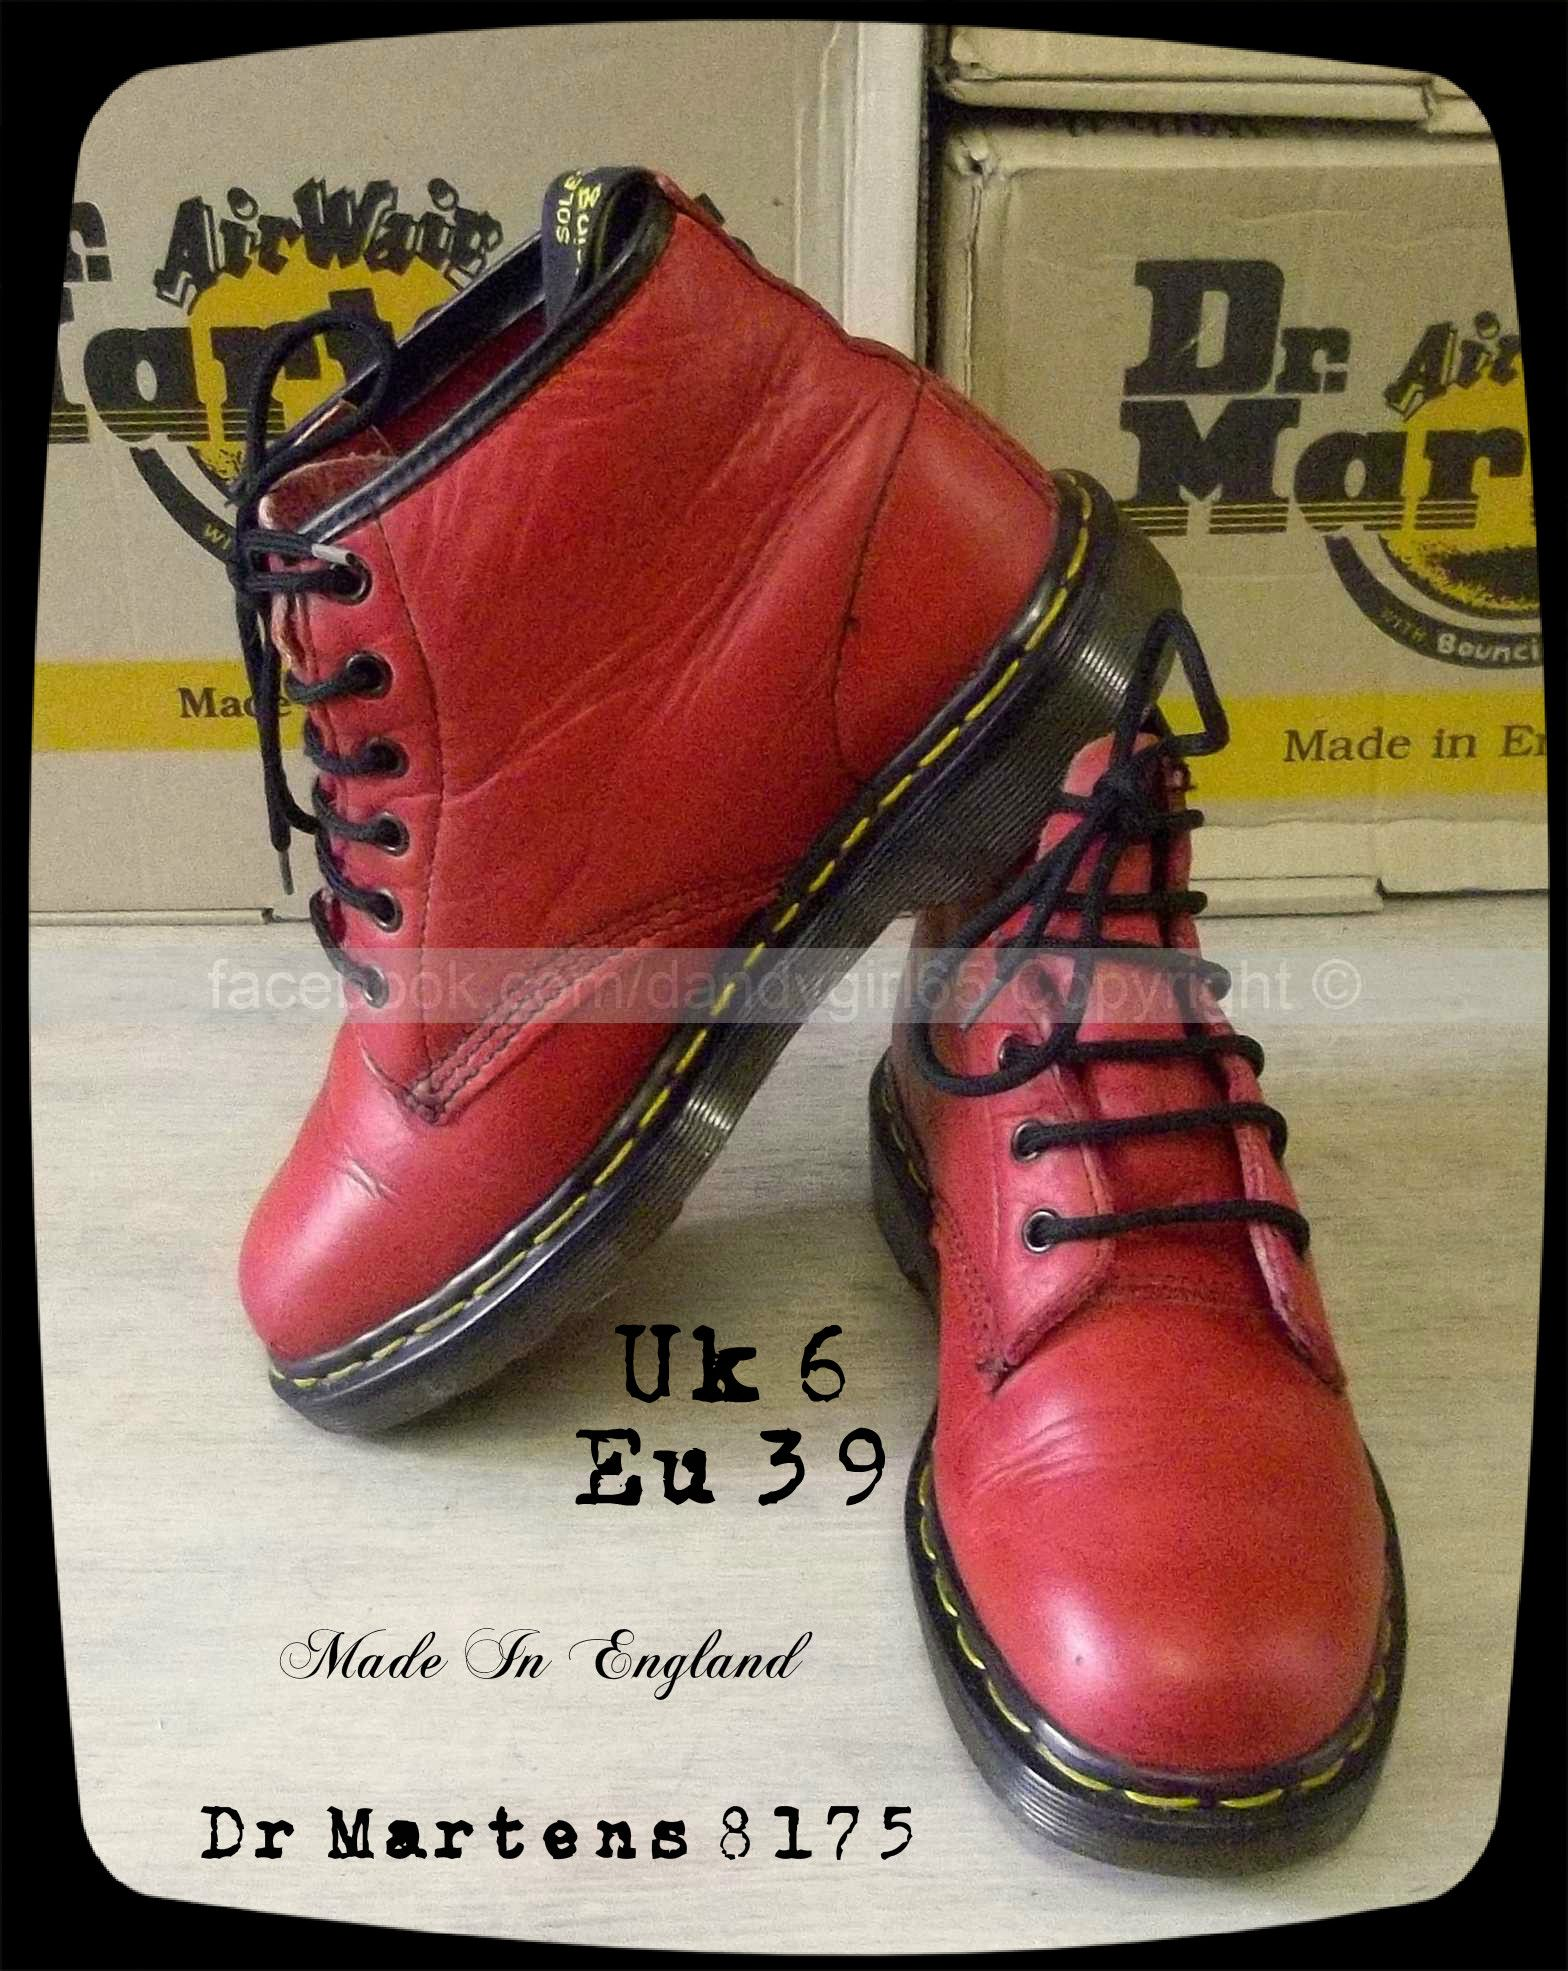 pas mal 1317d 8cea2 Dr Martens 8175 Vintage Uk6 ou Eu39 Made In Engand Couture ...